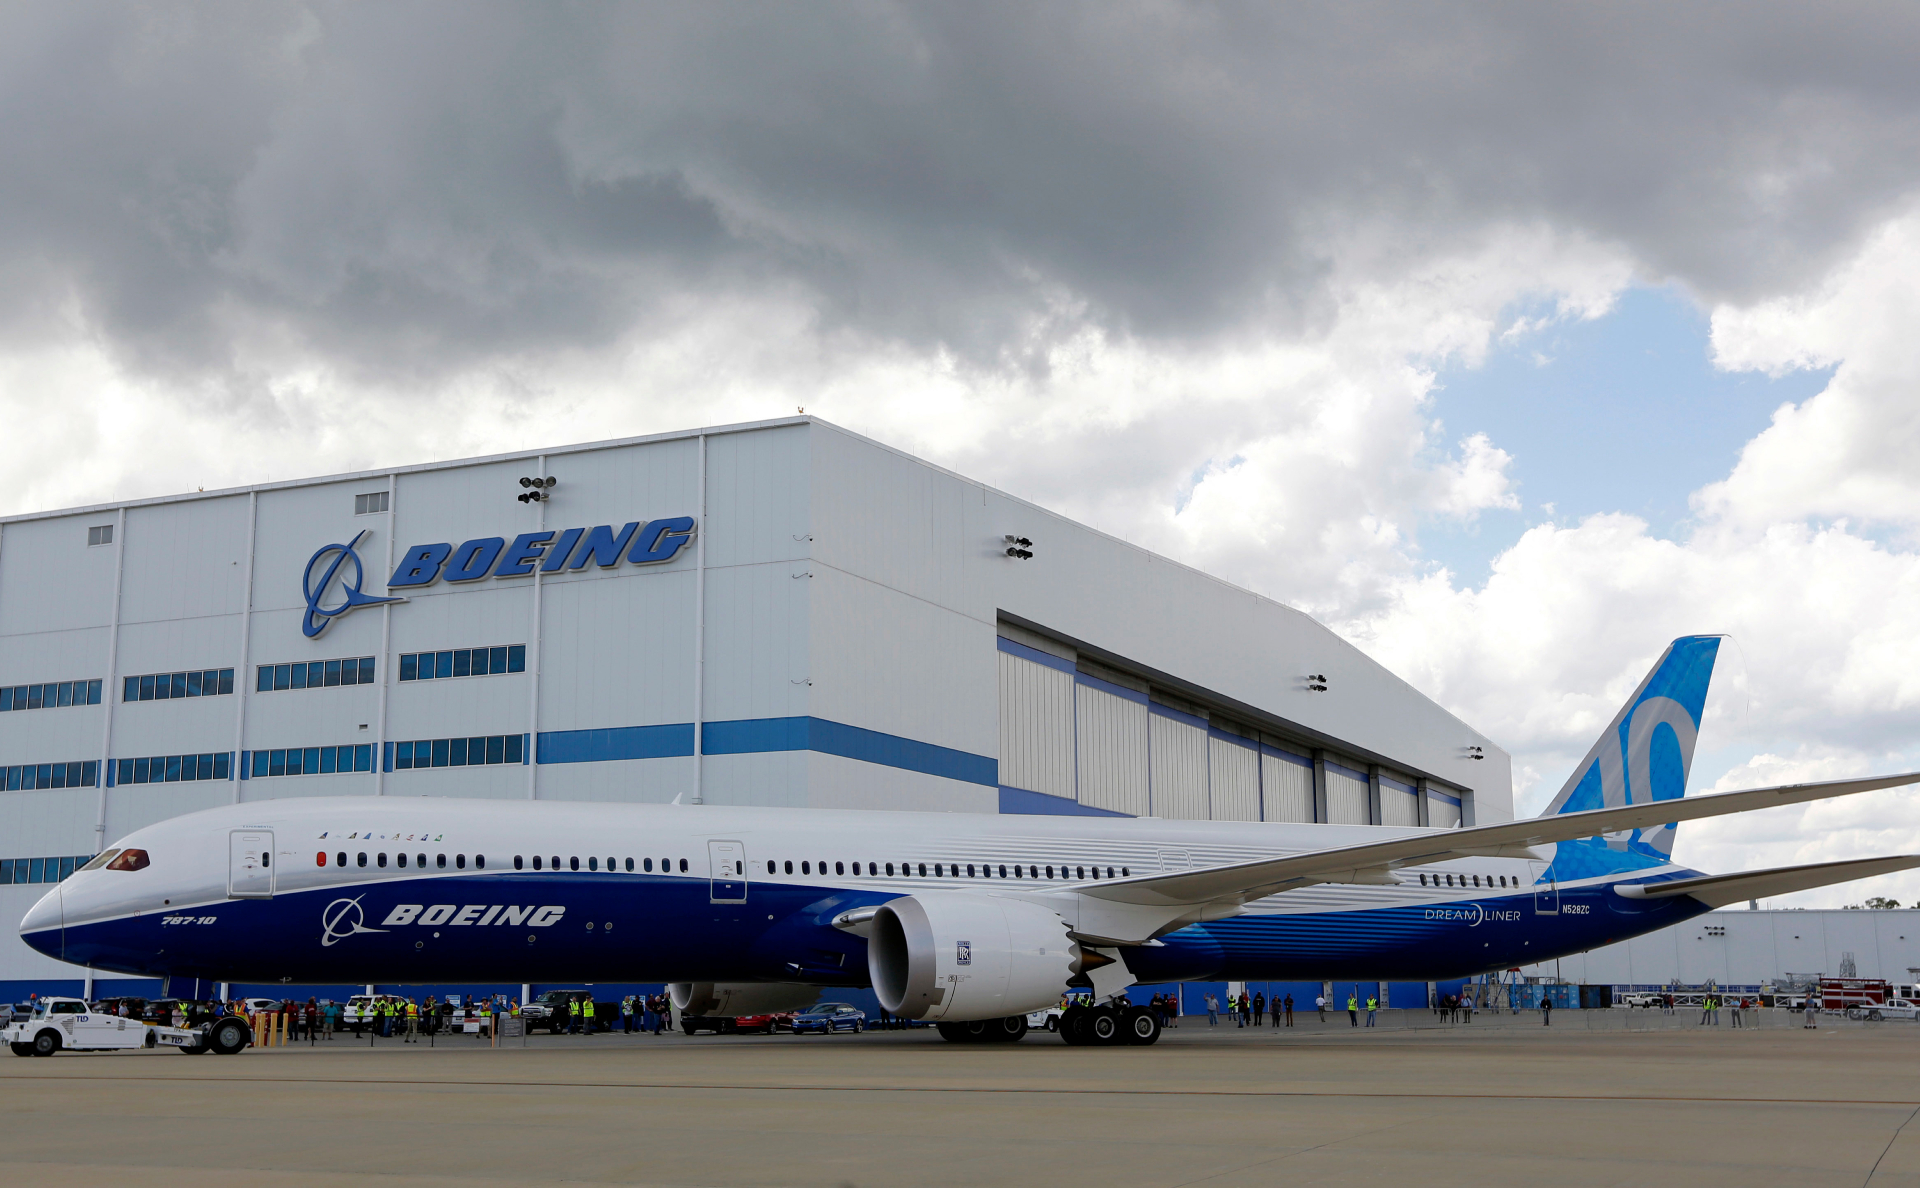 Boeing will not be able to resume deliveries of the airplanes 787 Dreamliner till the end of October